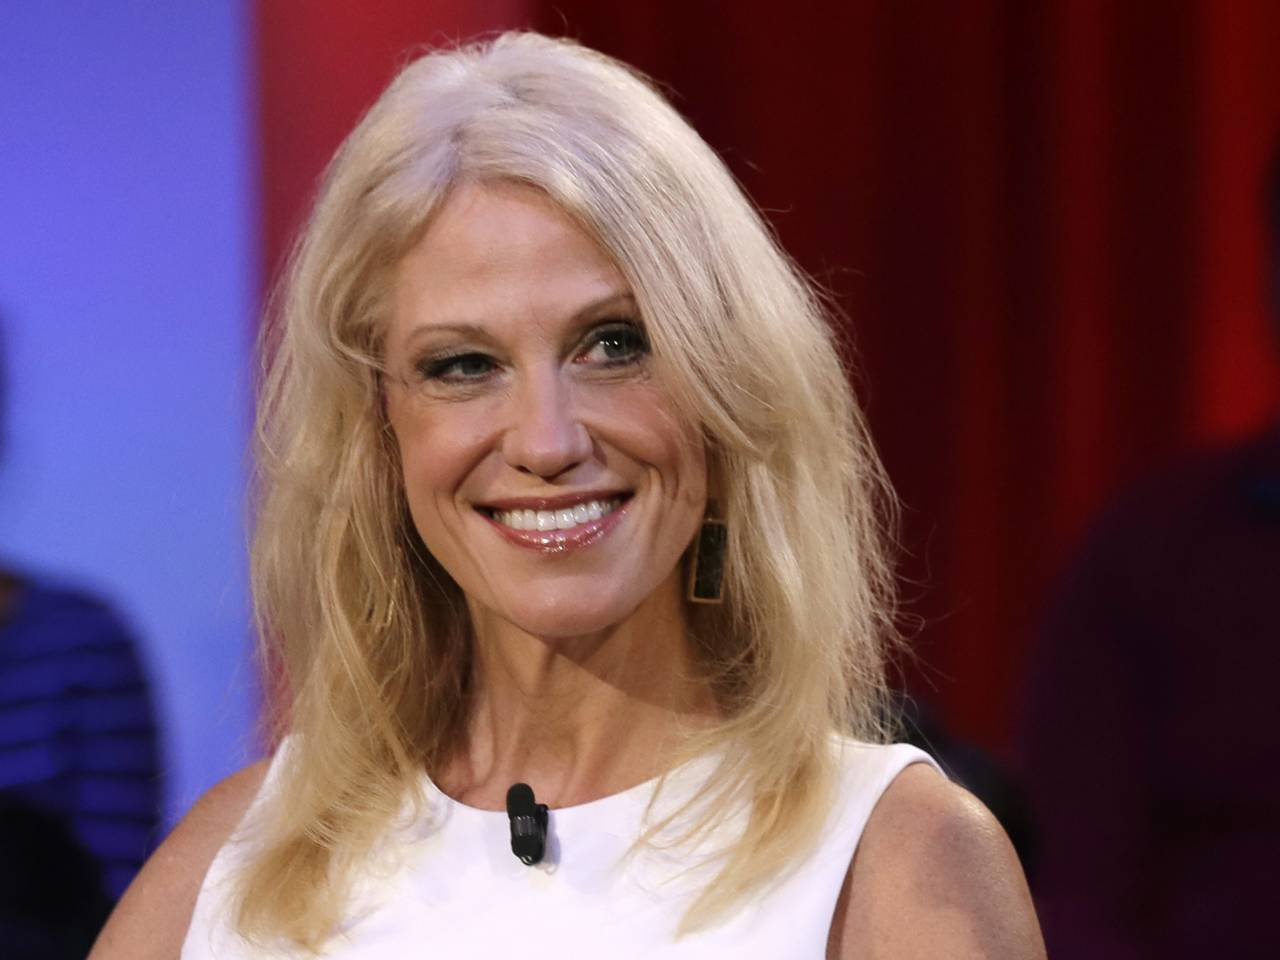 Kellyanne Conway Net Worth 2018 - How Rich is She? - The ...